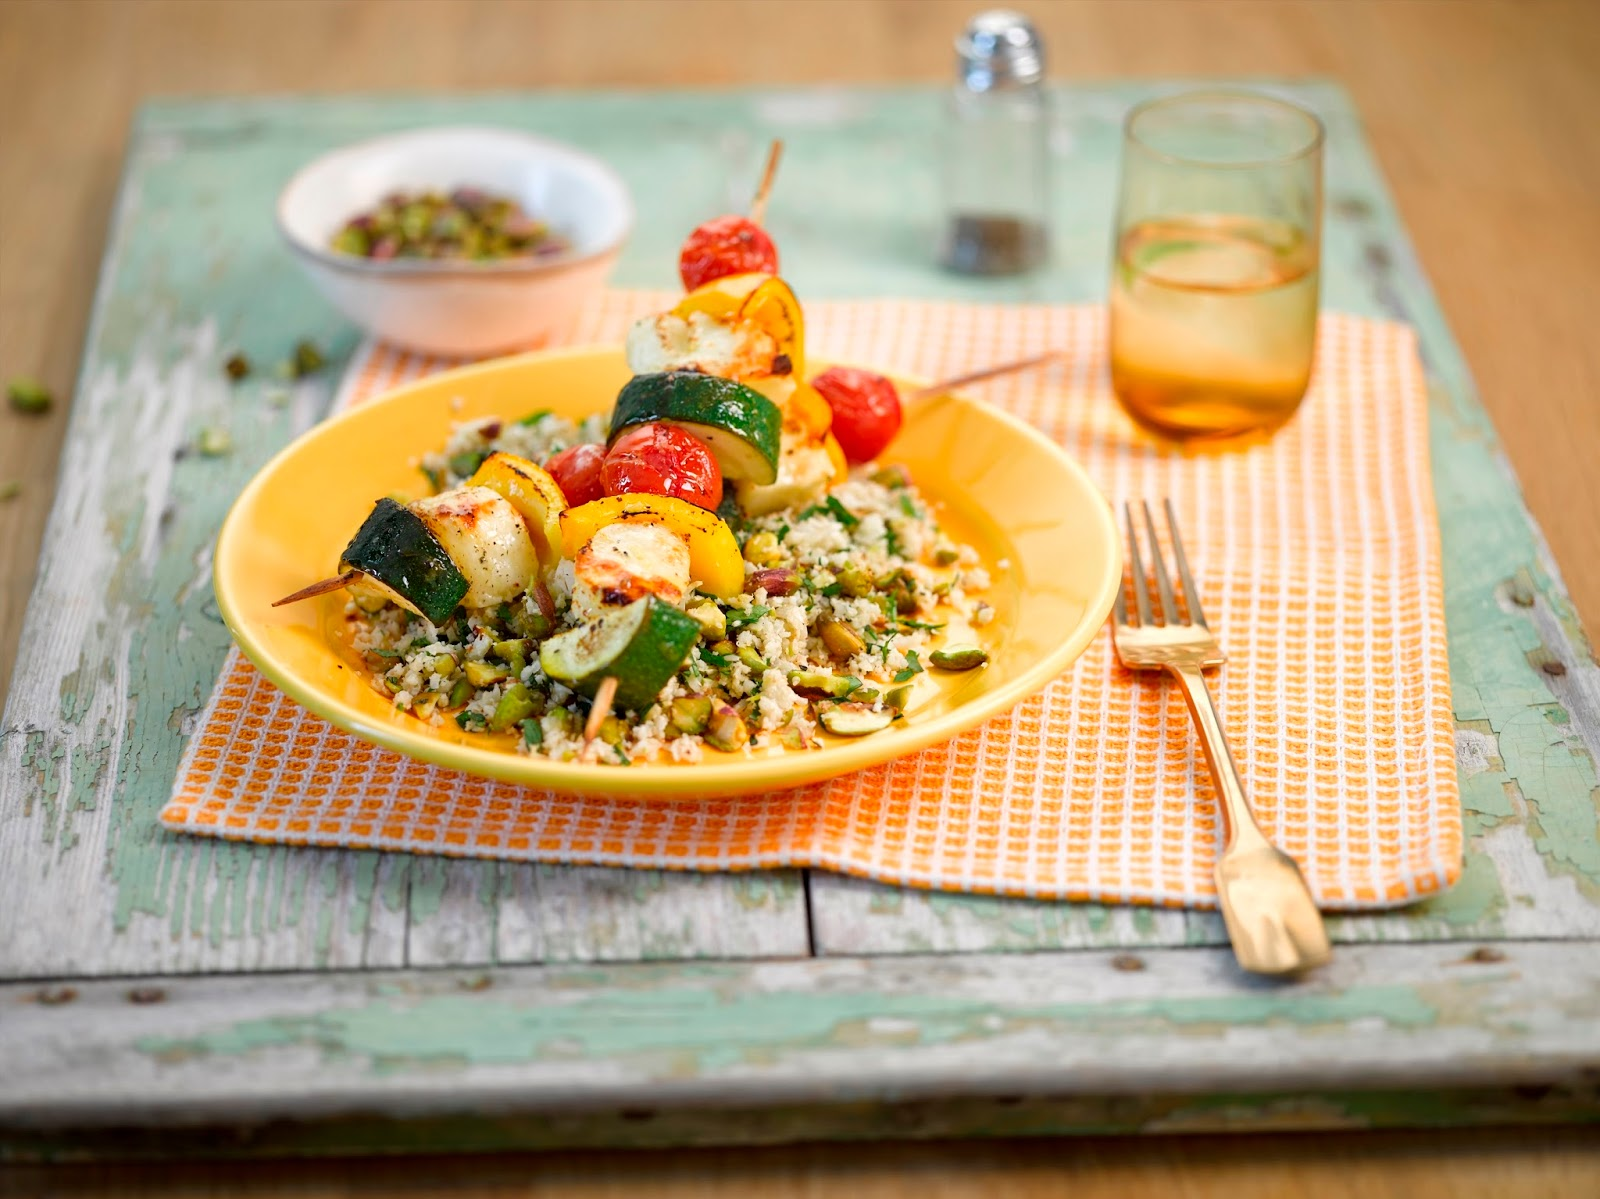 Cauliflower And Pistachio Couscous With Halloumi And Vegetable Kebabs